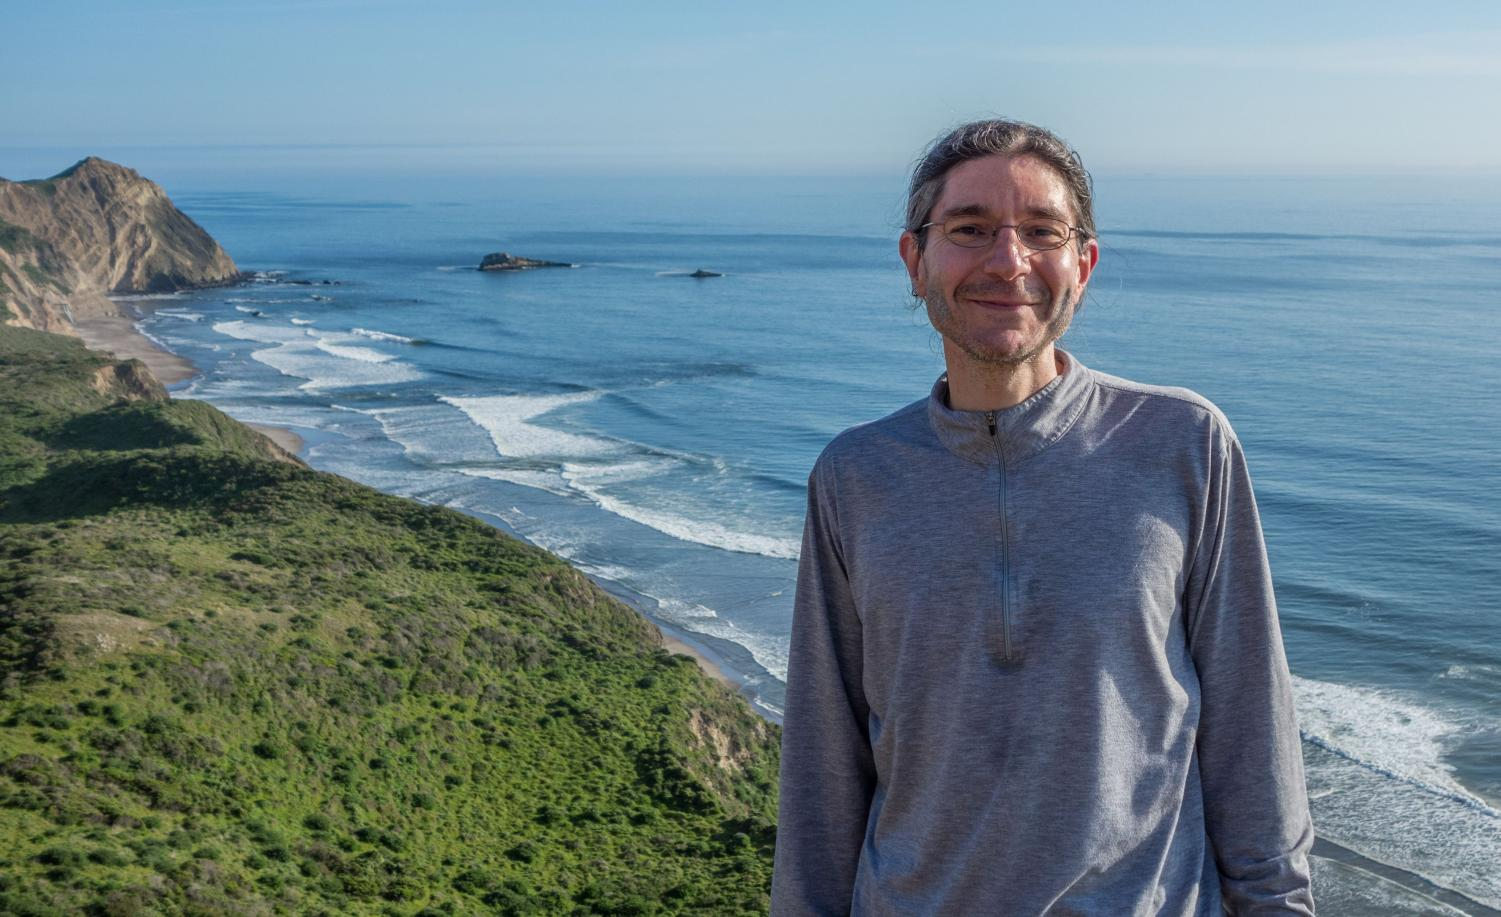 A guide to gravity waves with Dr. Eliot Quataert